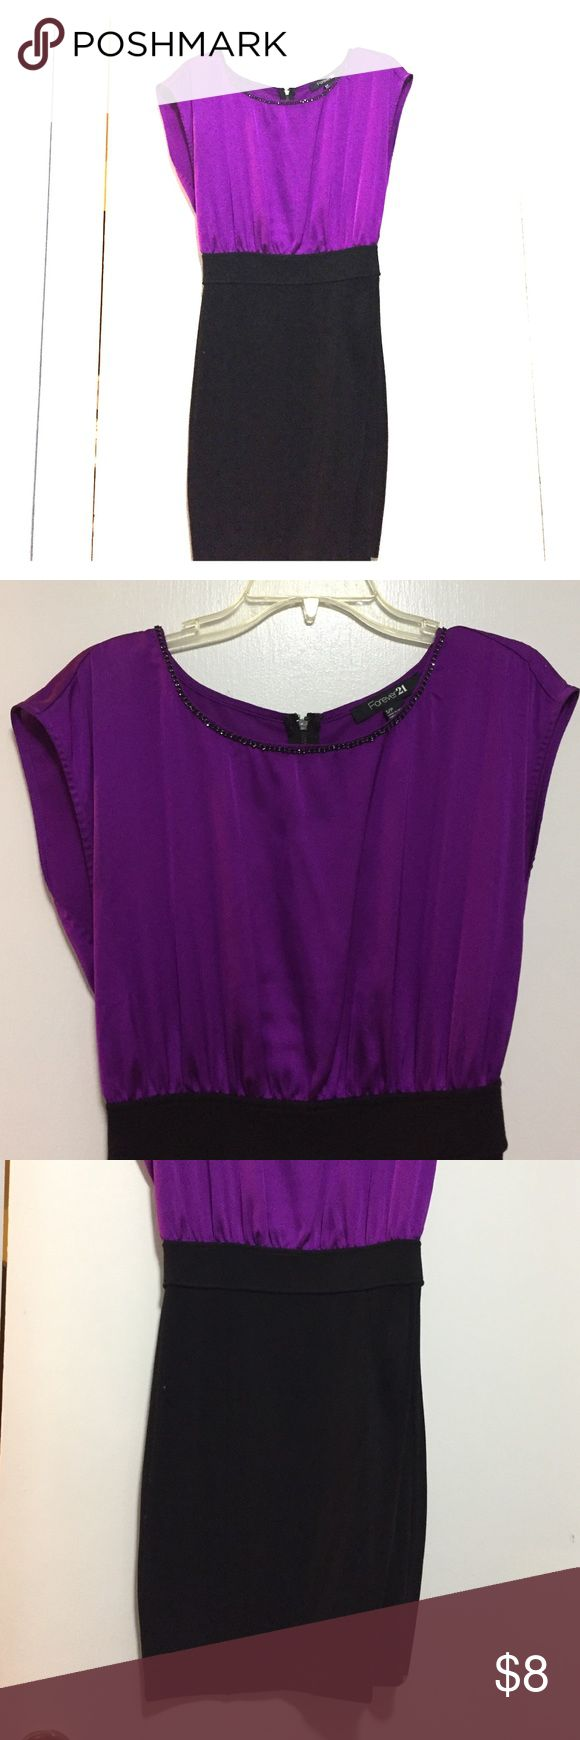 Forever21 Night out dress Purple and black dress perfect for girls night out or date night! Black tight fitted skirt, top is flown and bright. Forever 21 Dresses Mini